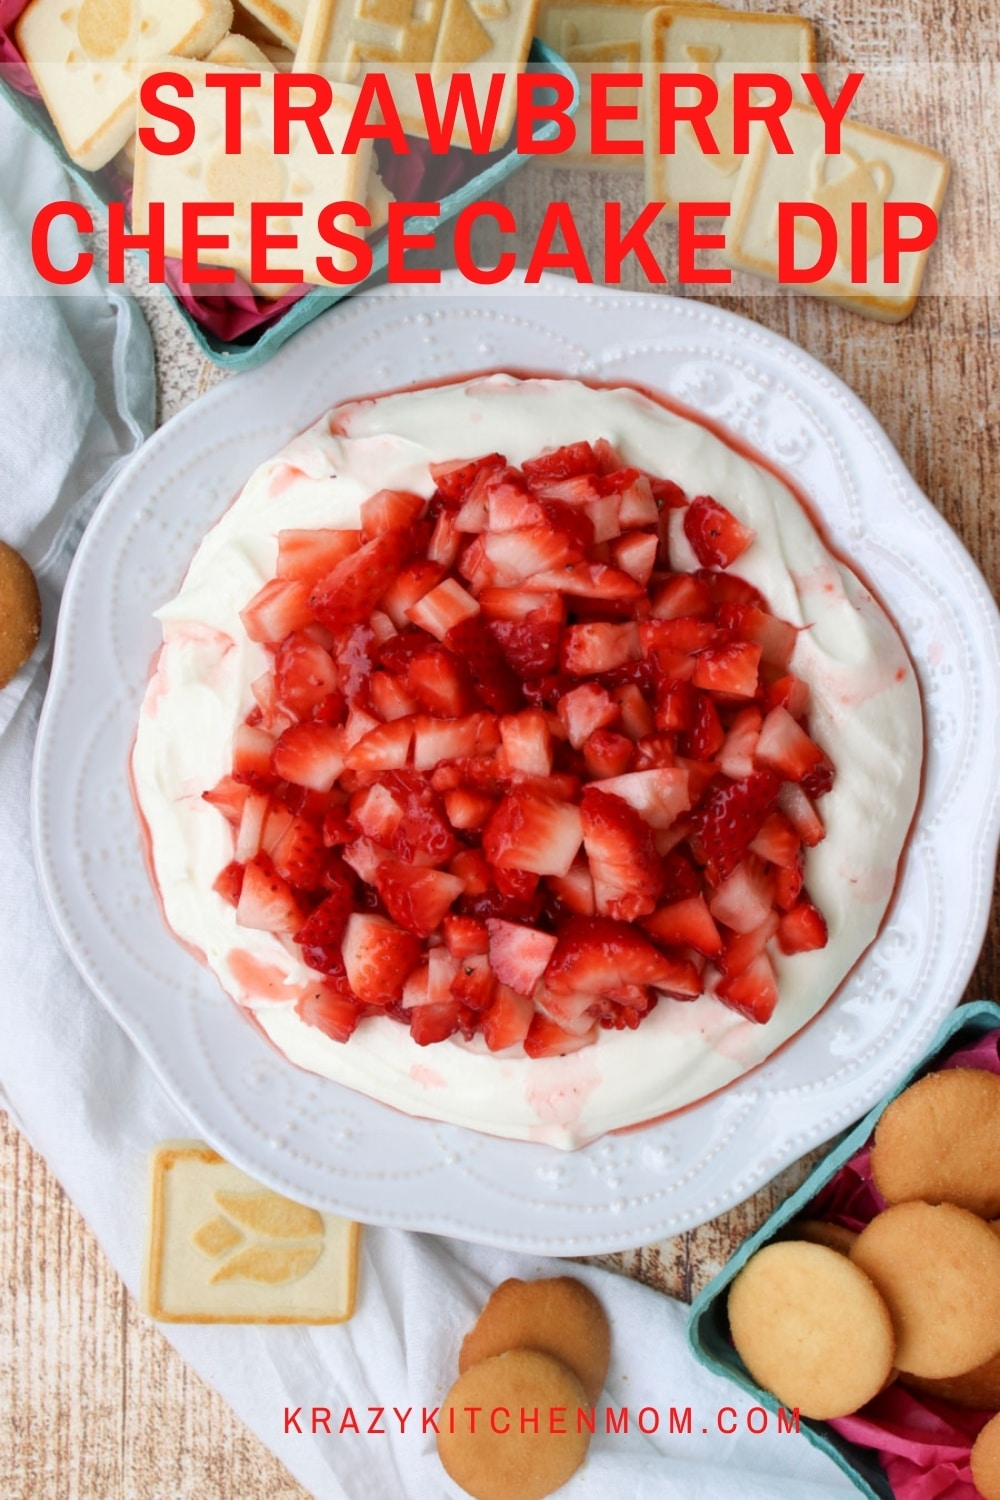 No-bake, super creamy, light, and fluffy cheesecake filling topped with fresh sweet strawberries. Serve it with cookies or fruit for dipping. via @krazykitchenmom